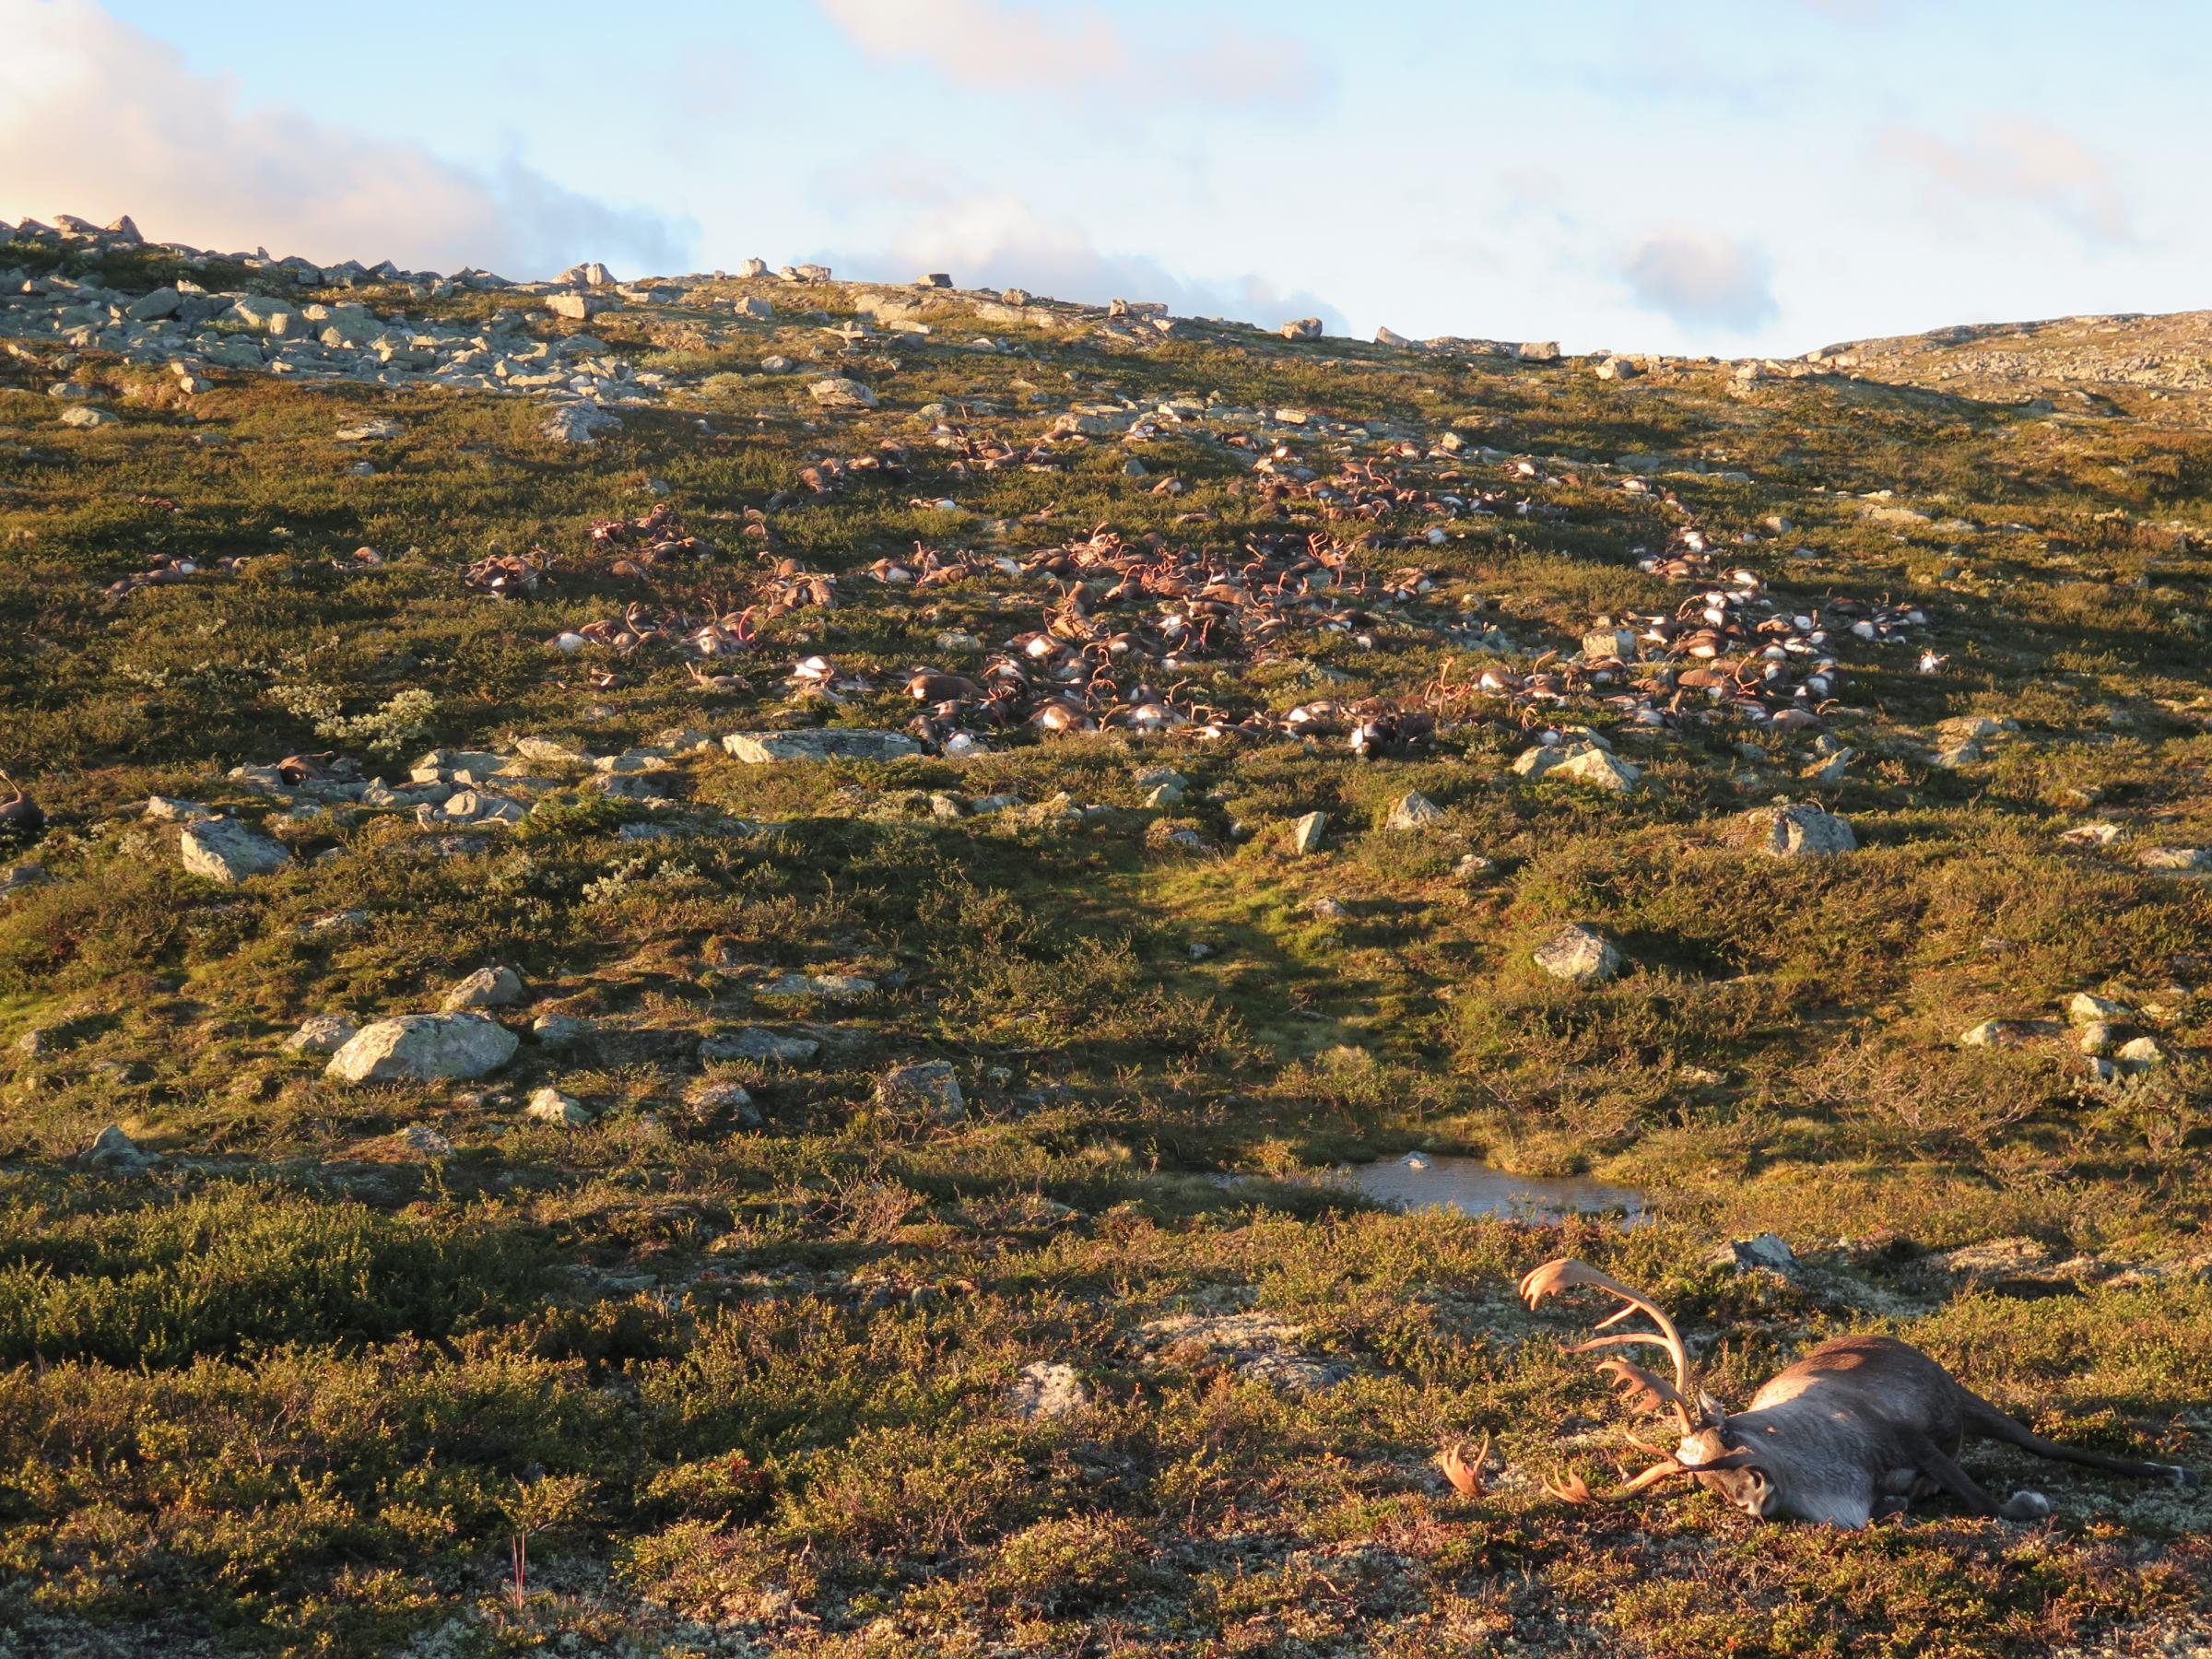 Lightning Strike Kills Over 300 Reindeer In Southern Norway